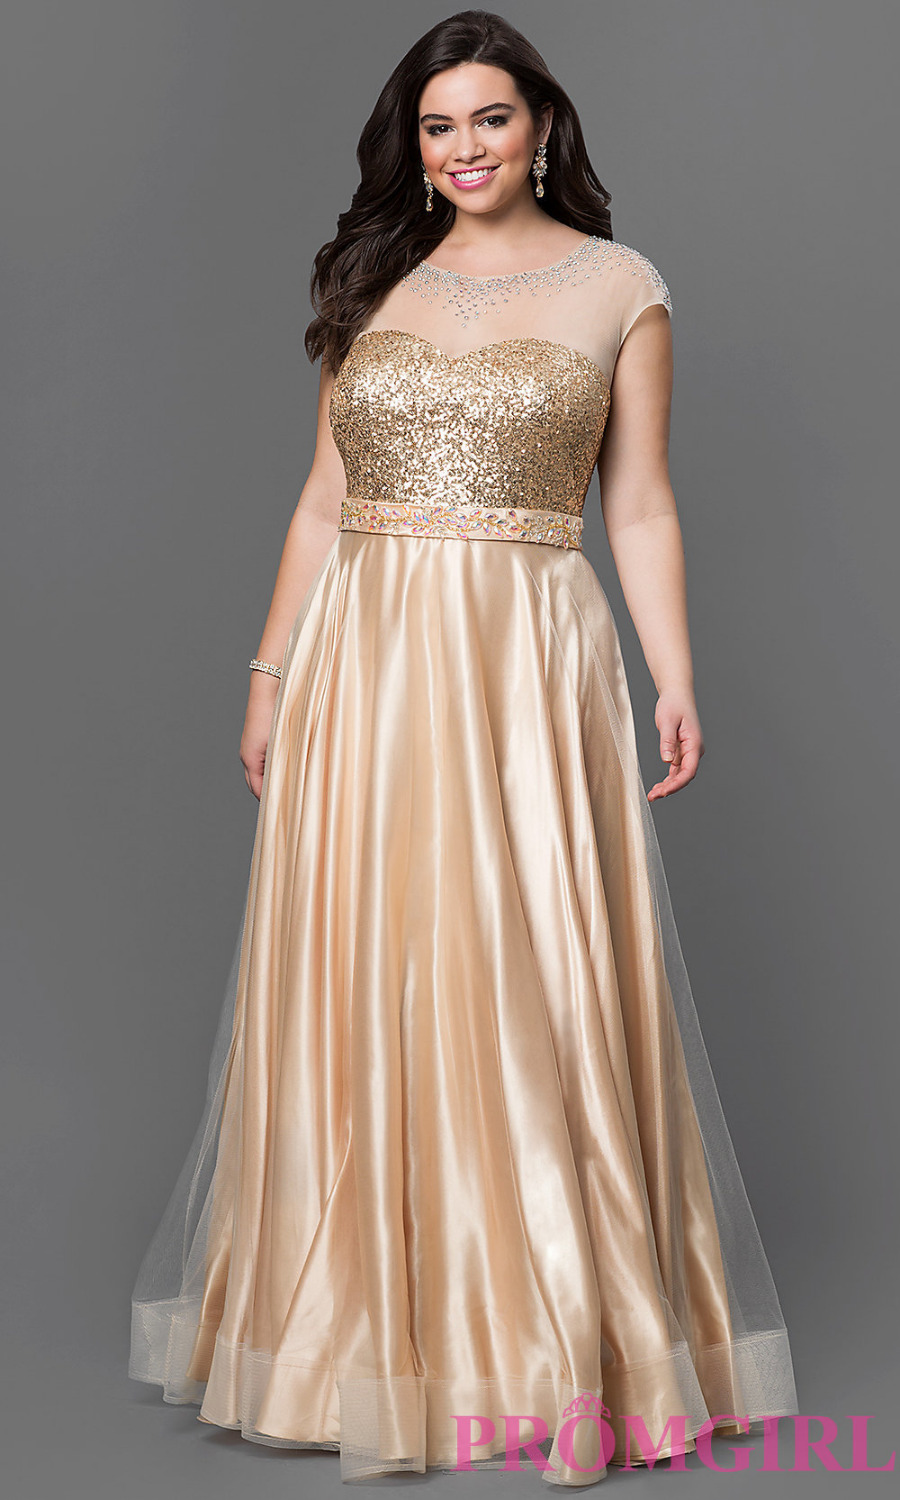 Plus Size Evening Dresses 2016 Gold Plus Size Dress Sheer Neck ...